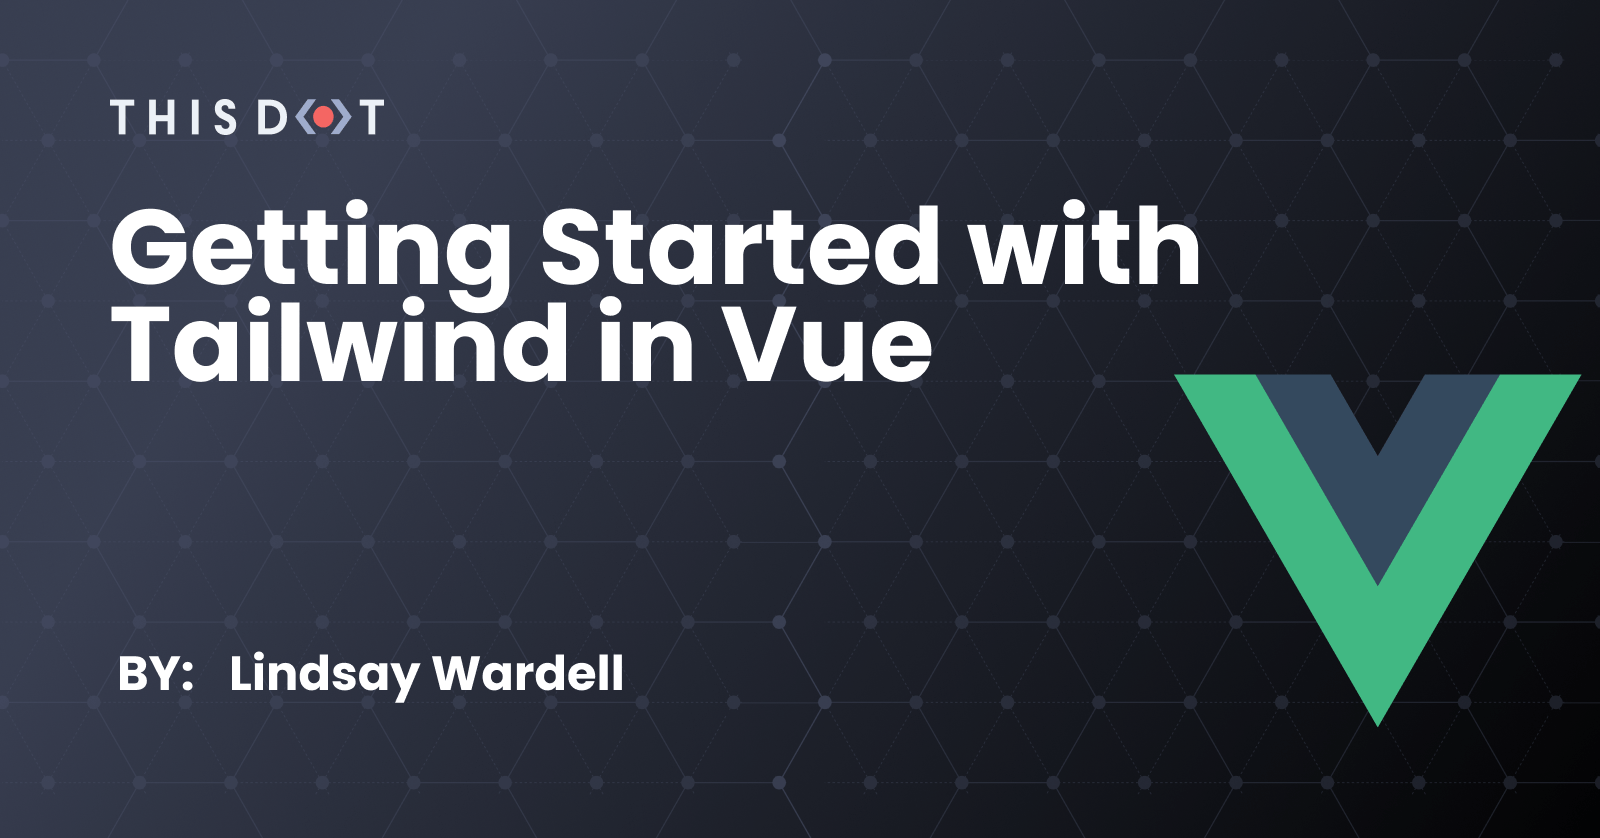 Getting Started with Tailwind in Vue